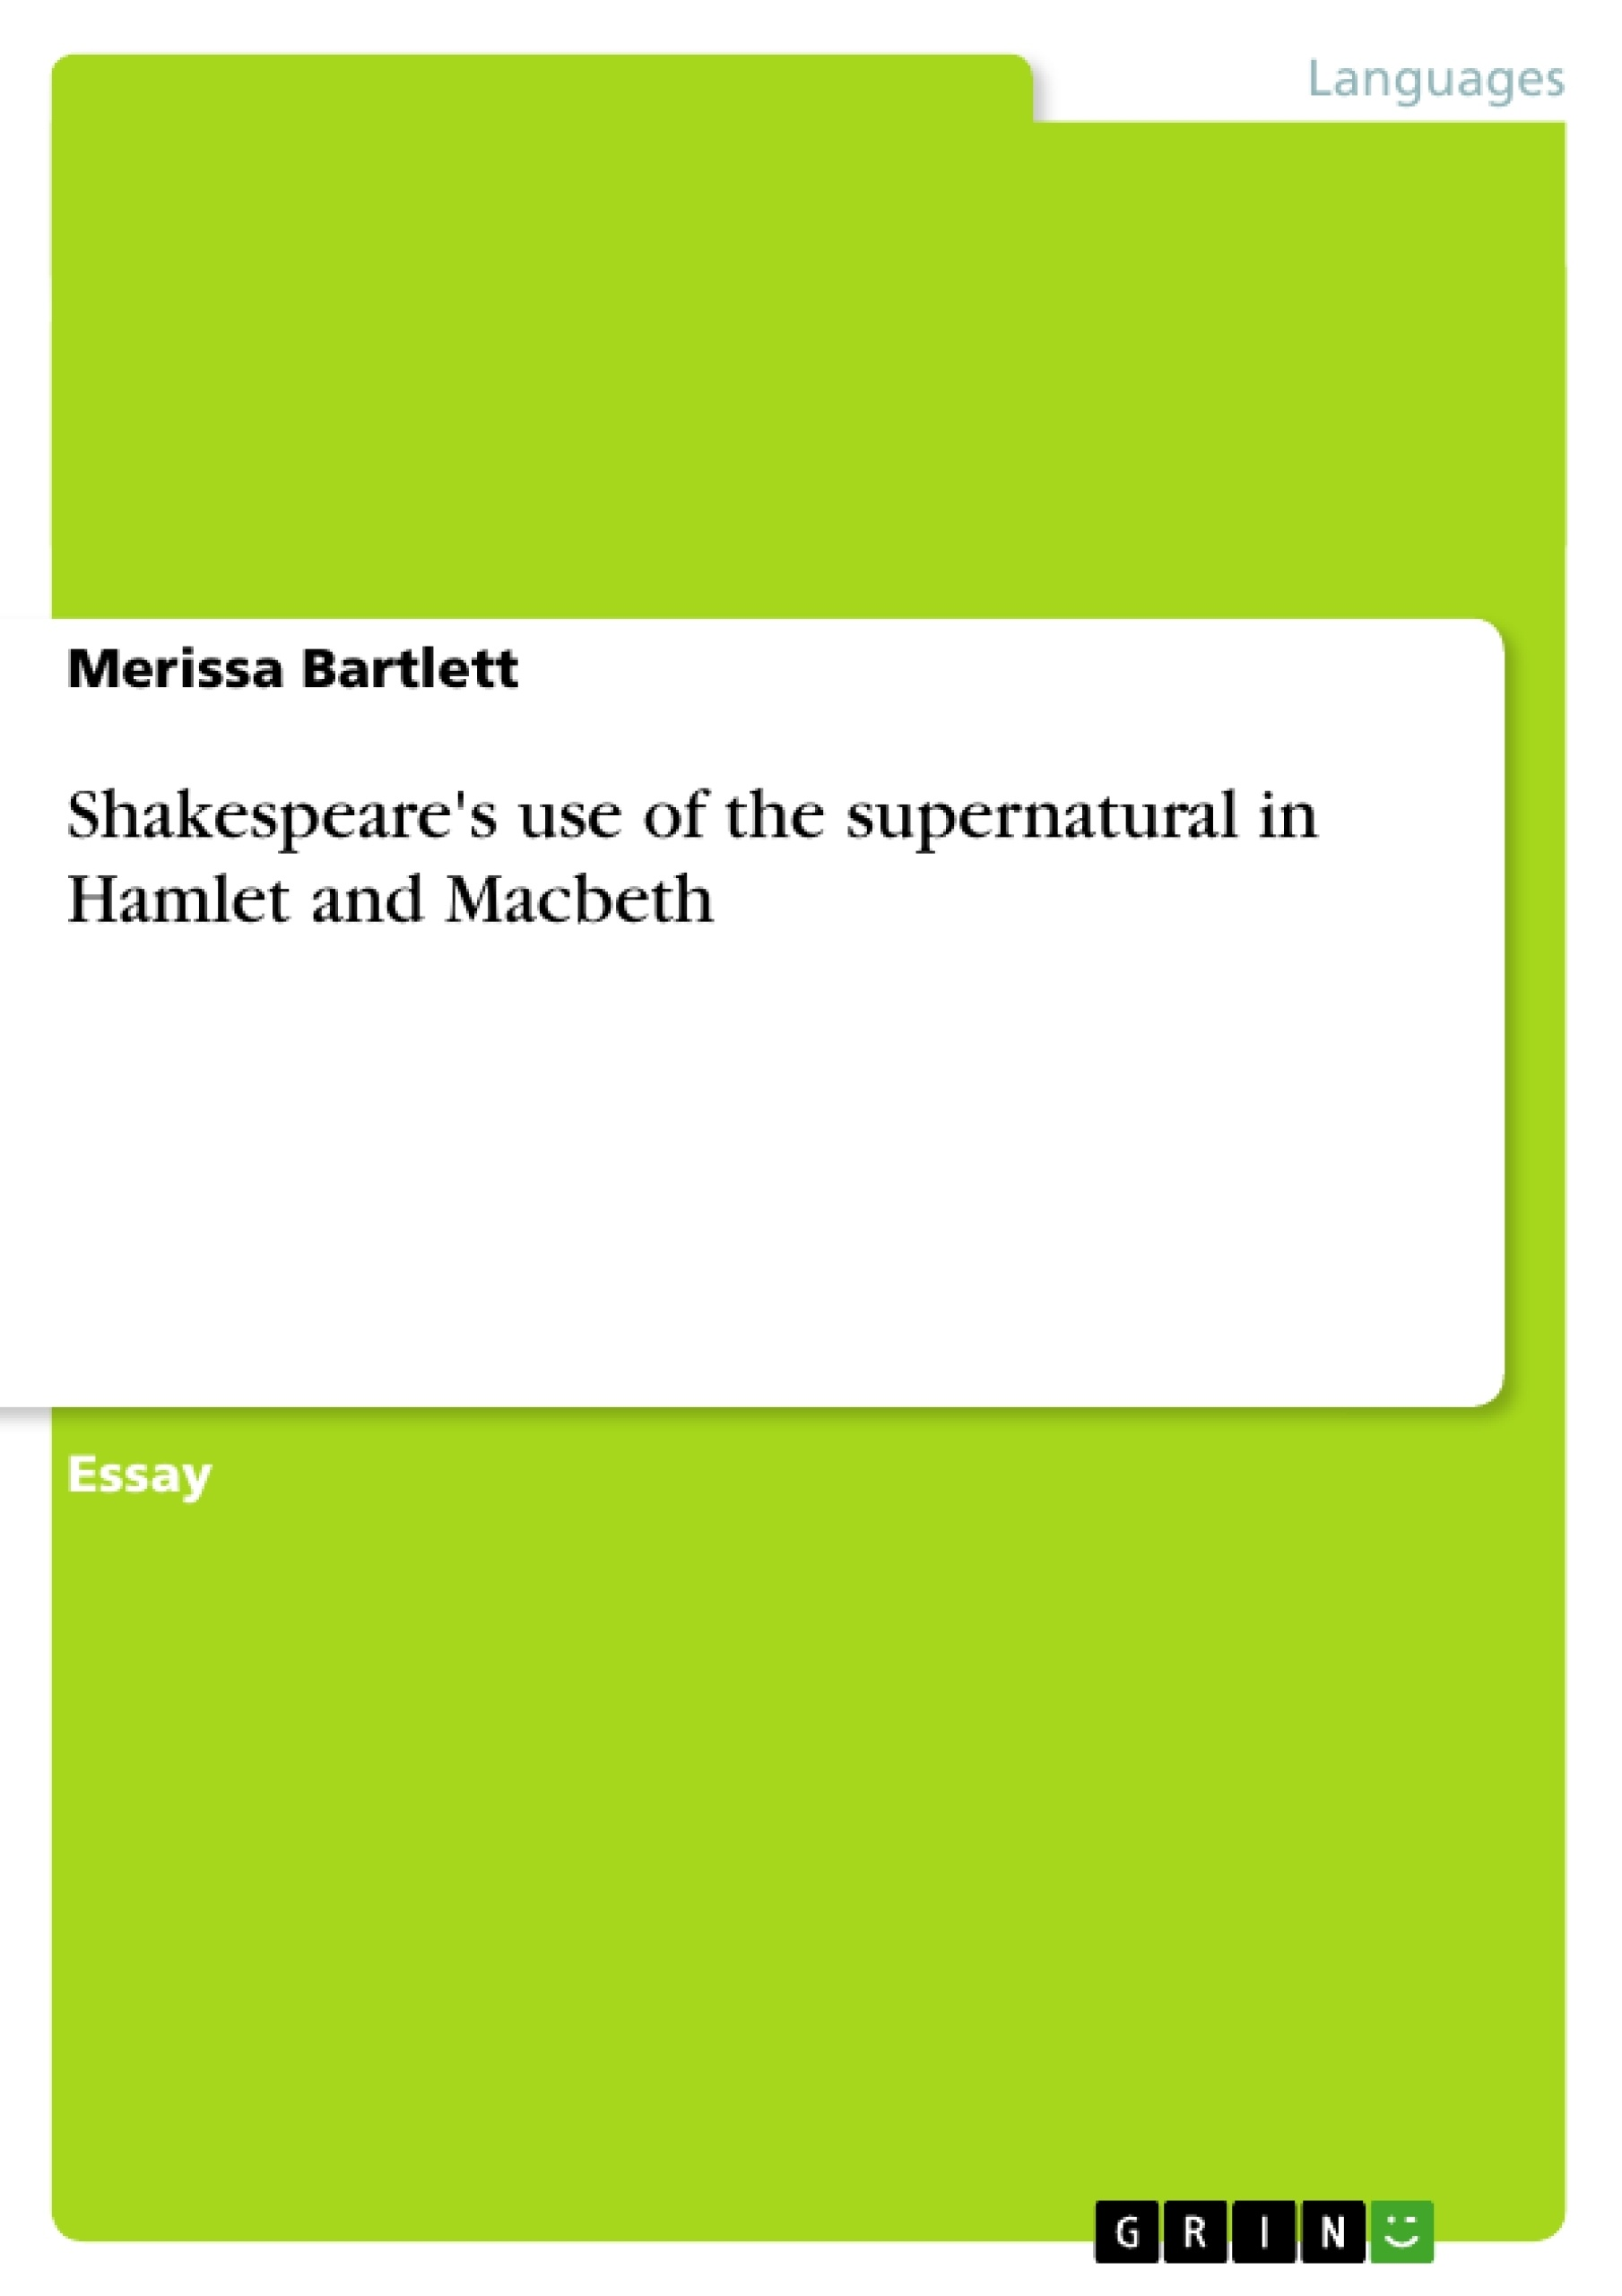 shakespeare s use of the supernatural in hamlet and macbeth shakespeare s use of the supernatural in hamlet and macbeth publish your master s thesis bachelor s thesis essay or term paper